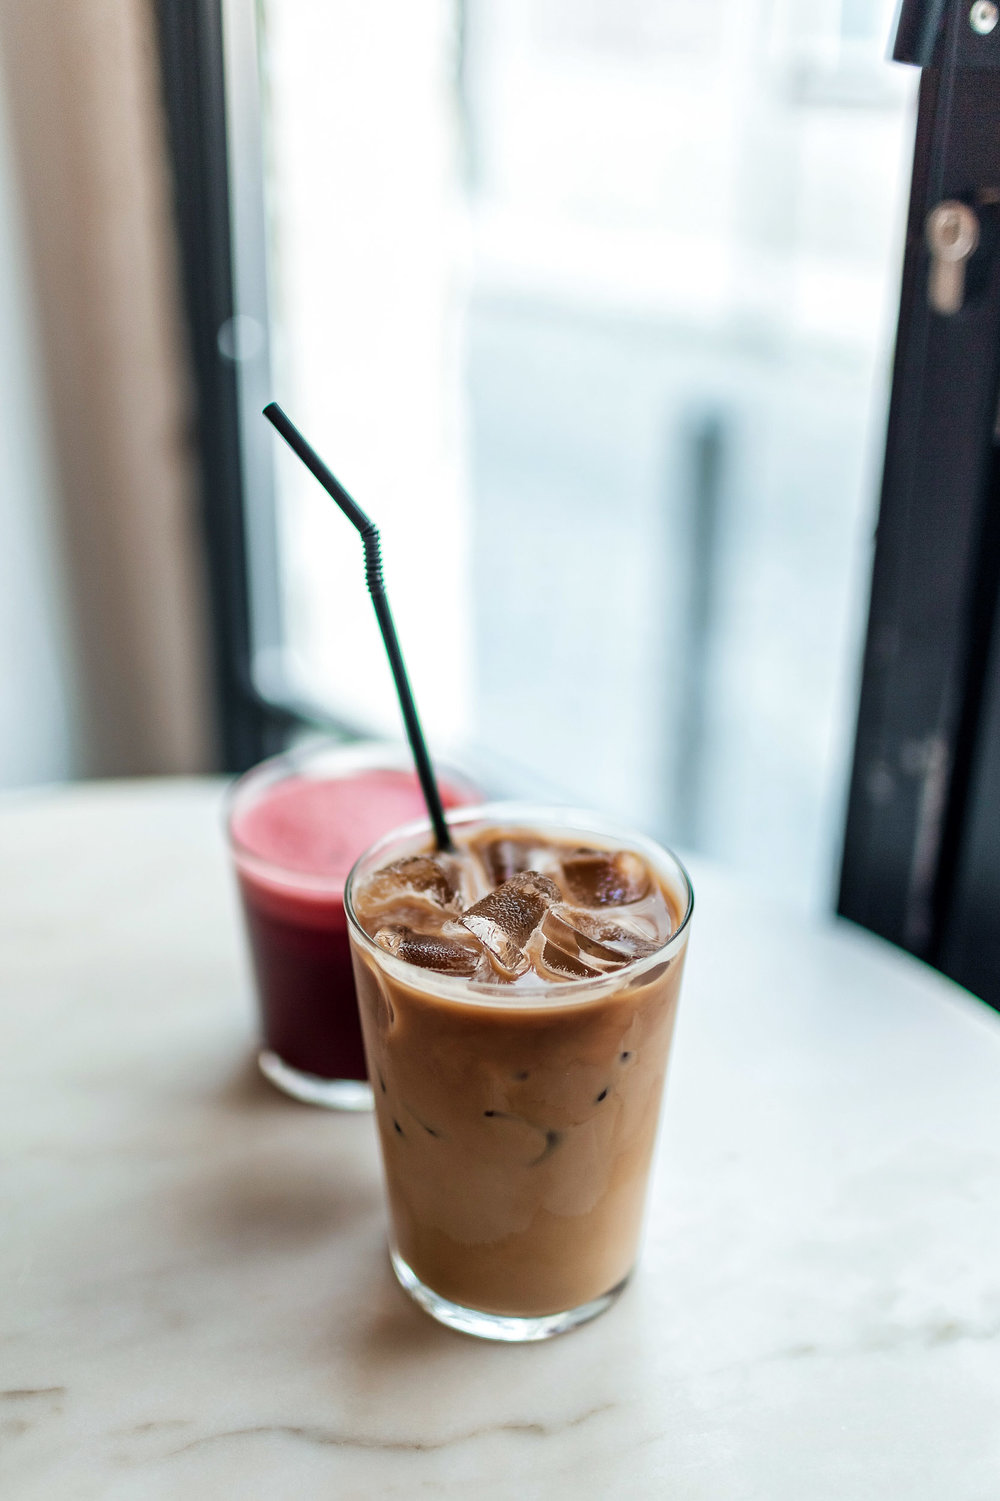 Dear Breakfast offers all day breakfast, featuring egg-centric dishes, delicious coffee, tea, and fresh juices and smoothies